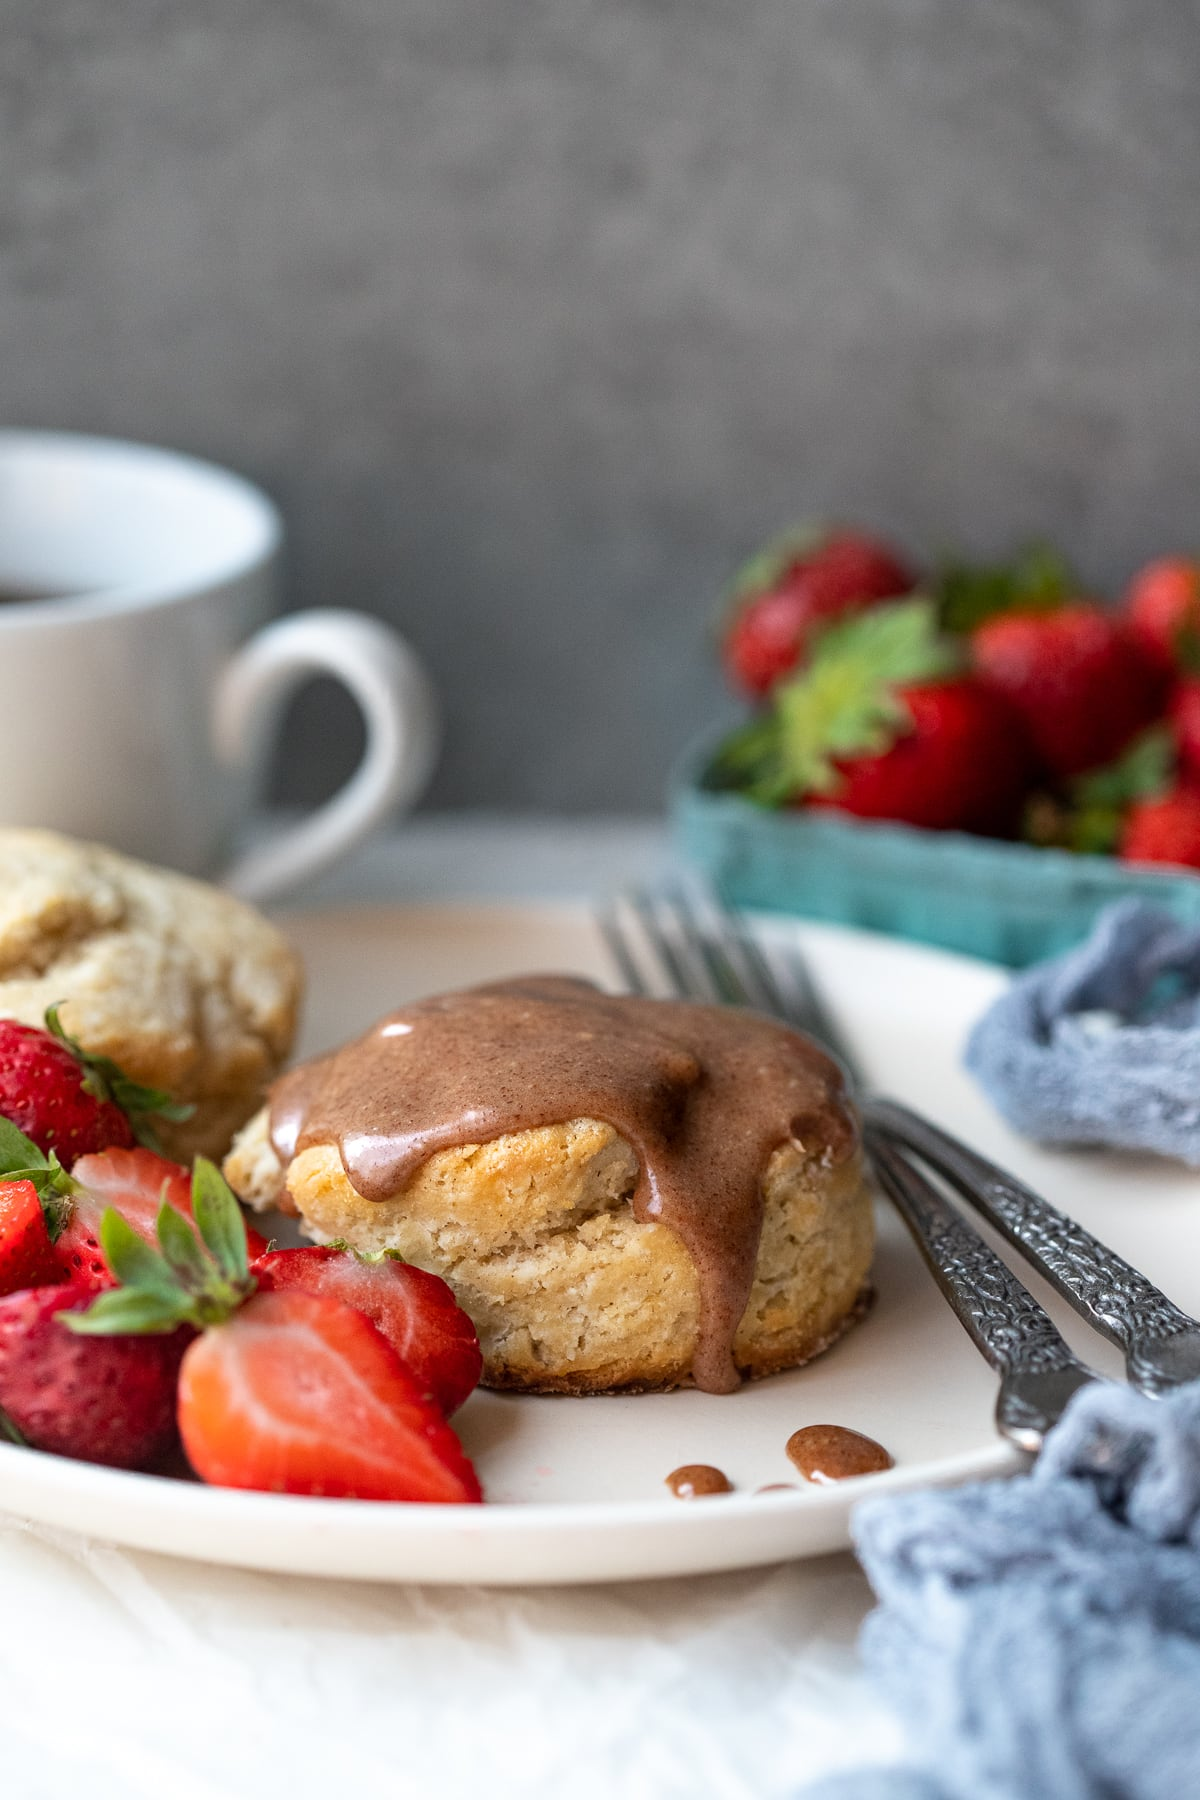 Forward-facing view of two biscuits on a plate, one with cinnamon icing on top, served with fresh berries. A coffee cup and a basket of strawberries are in the background.